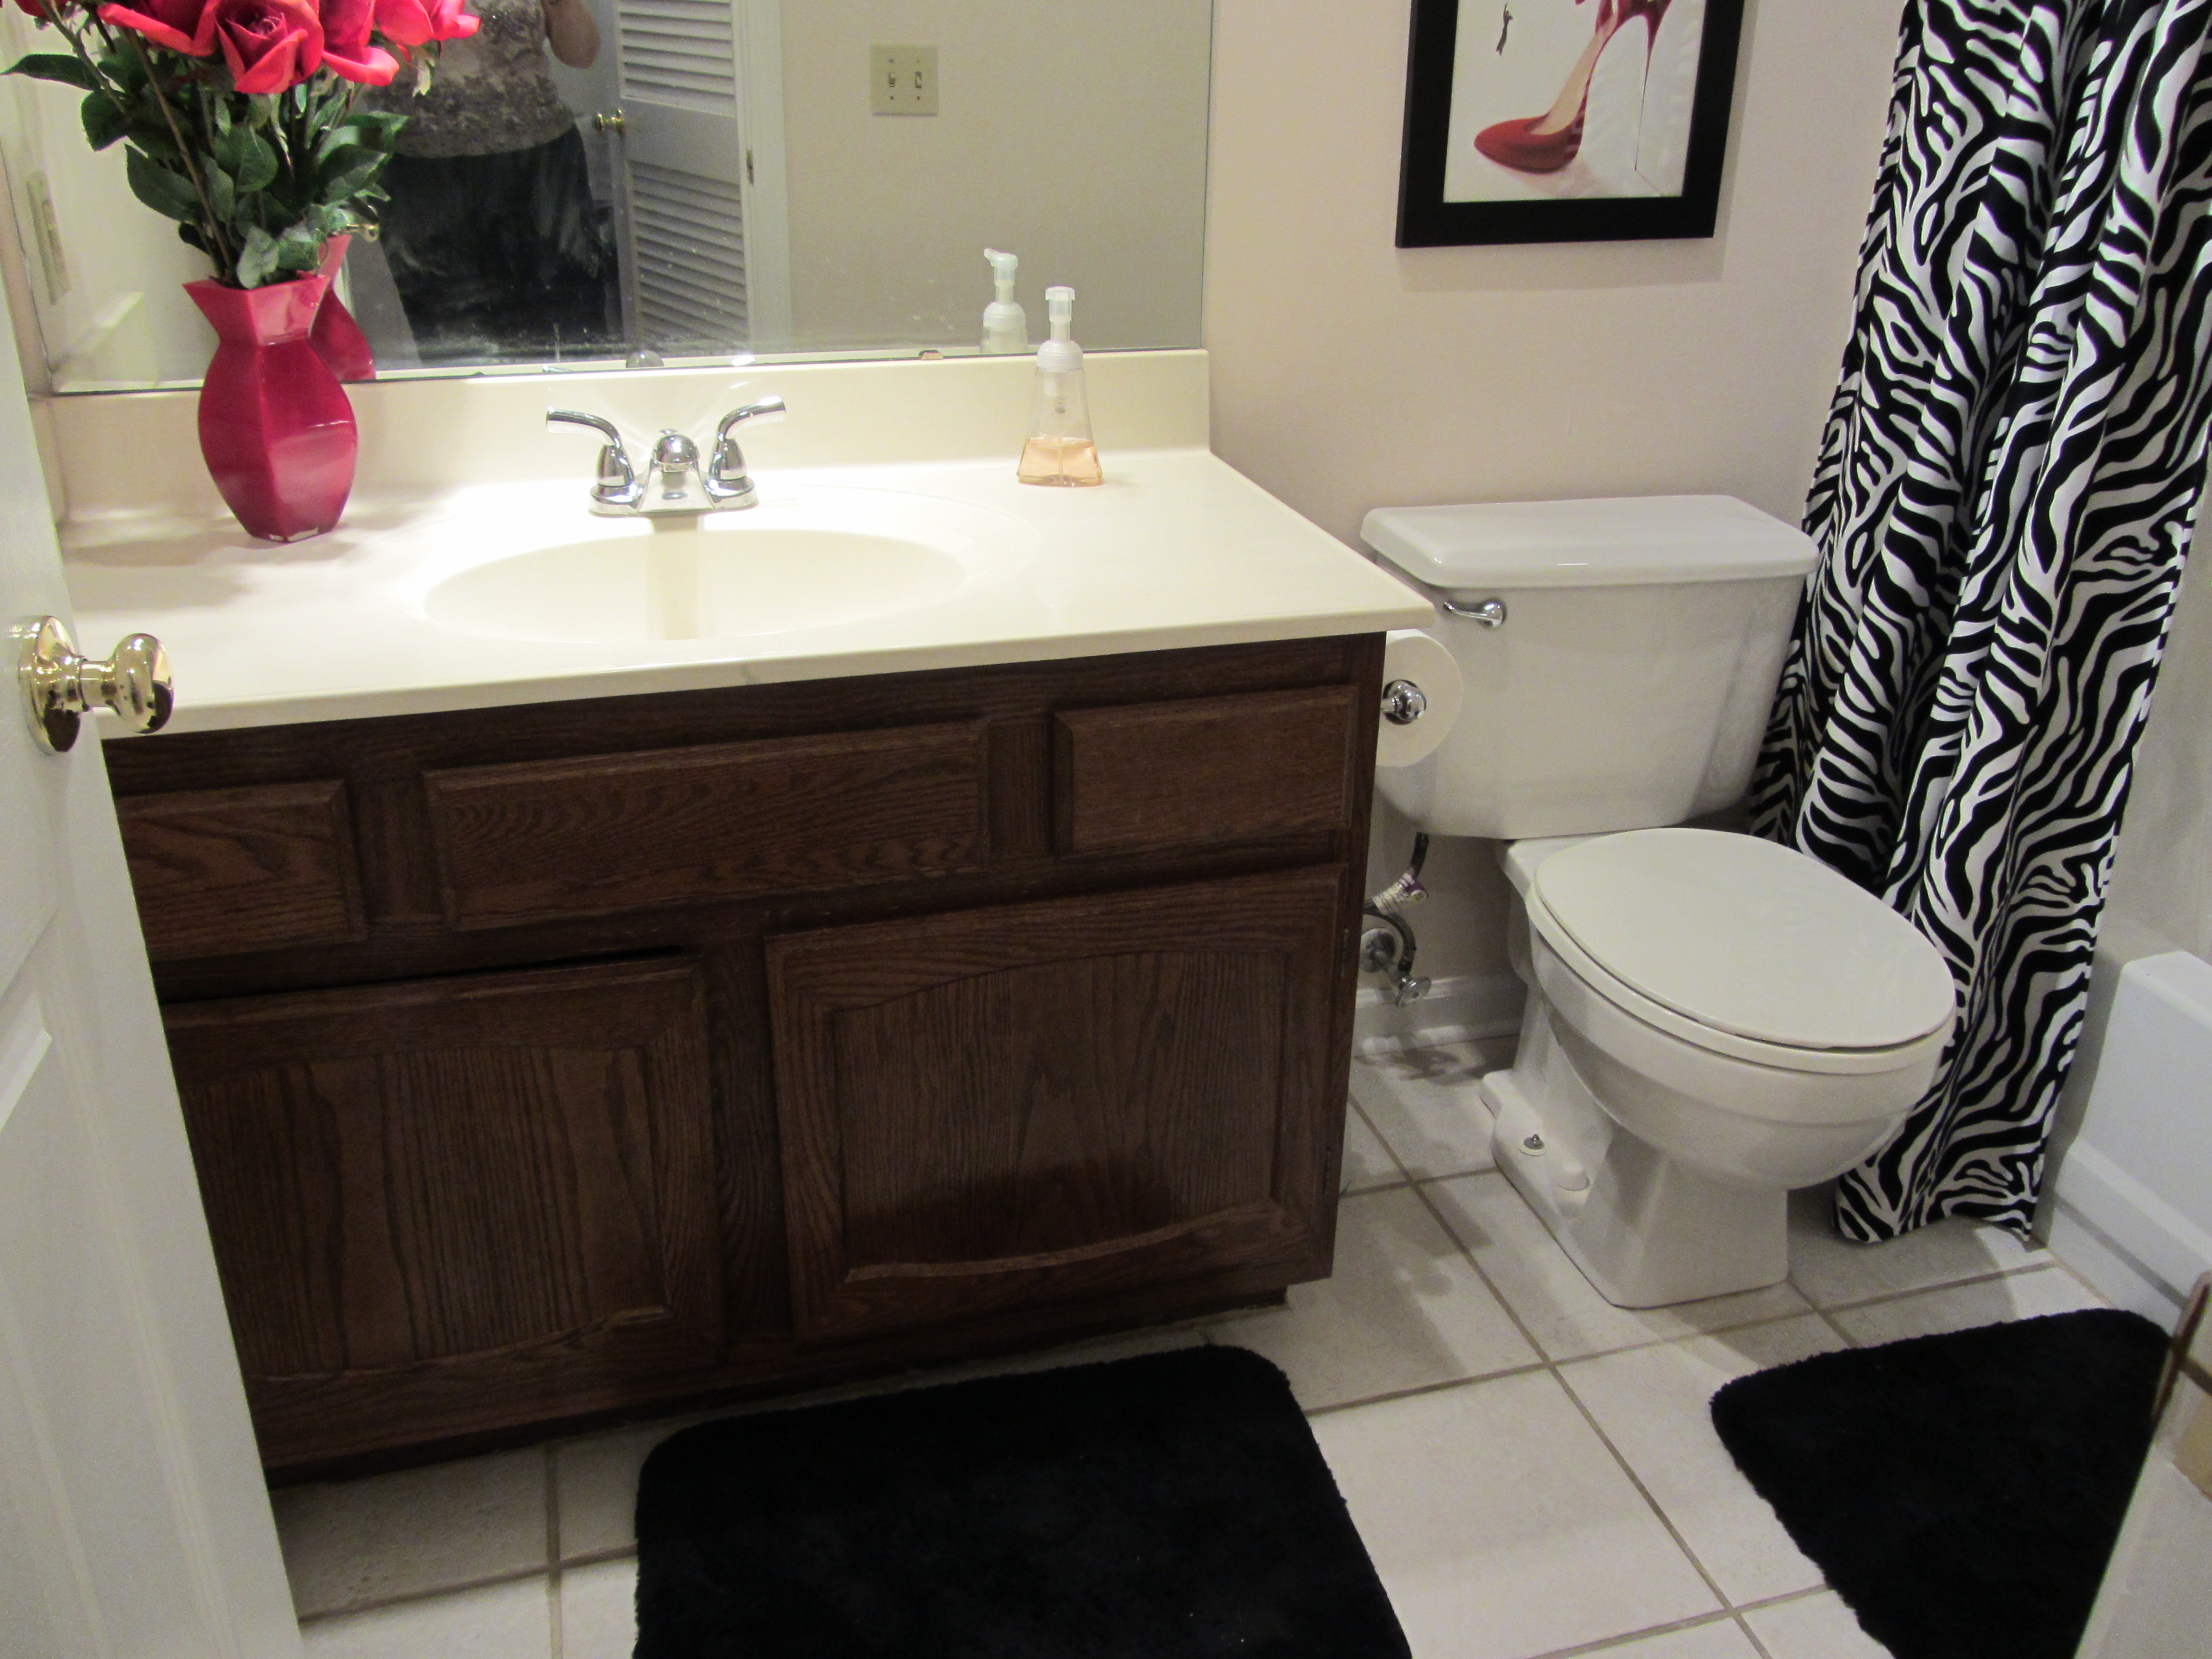 Small Bathroom Remodel On A Budget | Future Expat